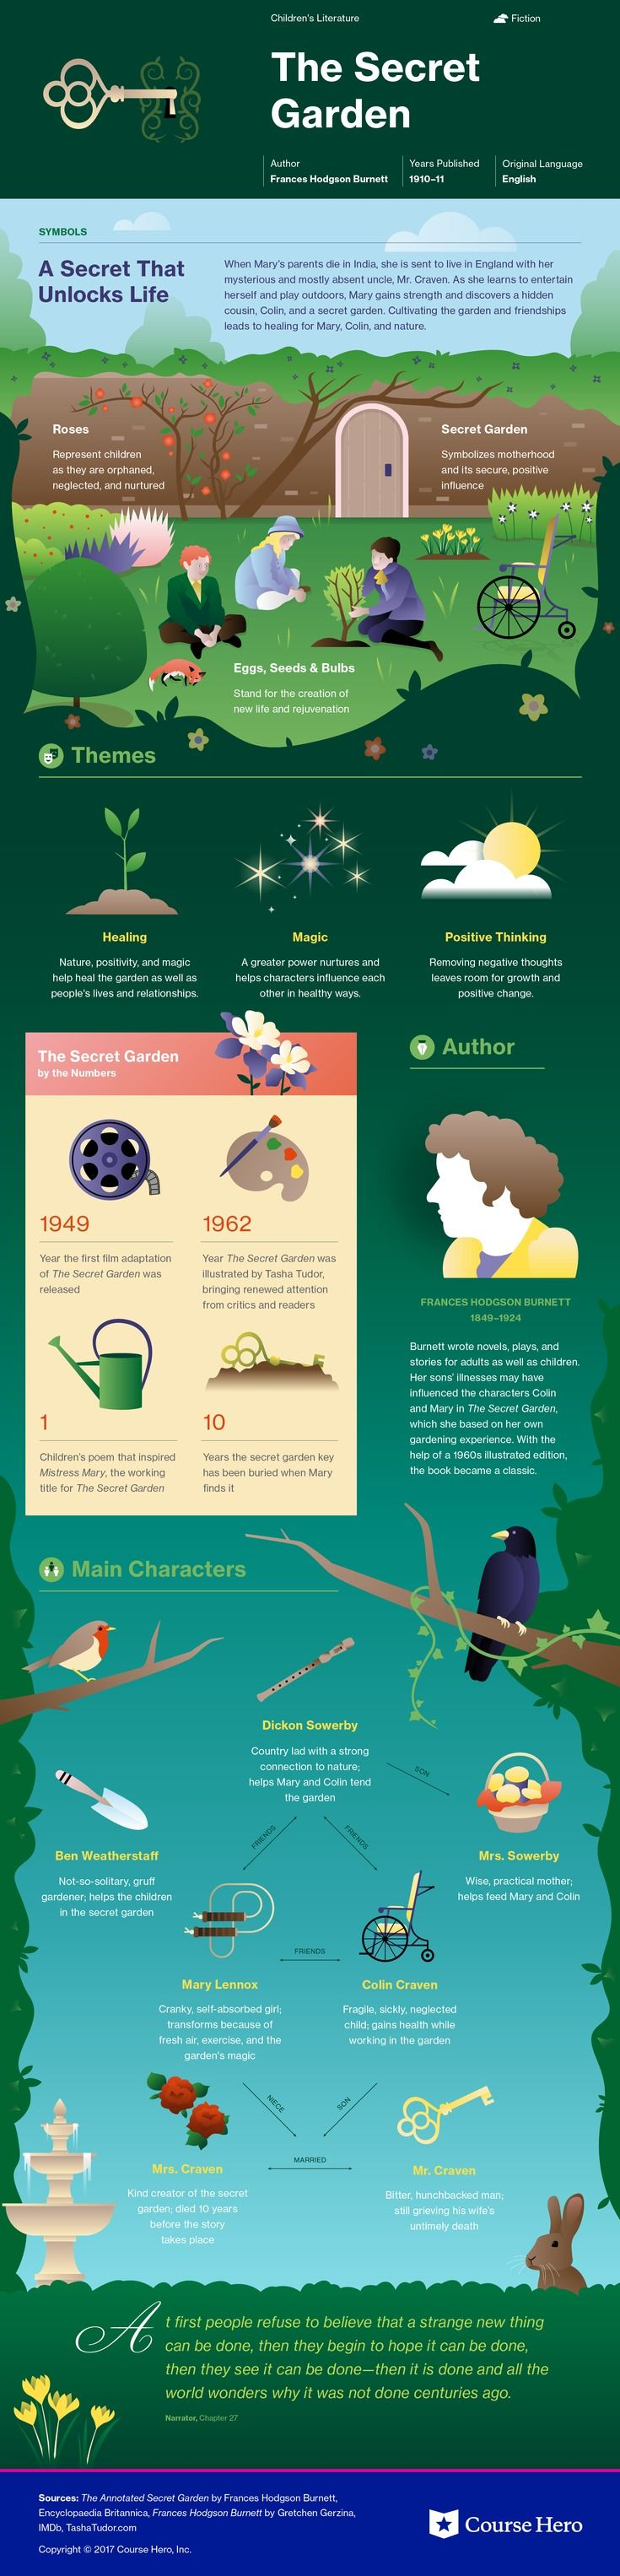 This @CourseHero infographic on The Secret Garden is both visually stunning and informative!